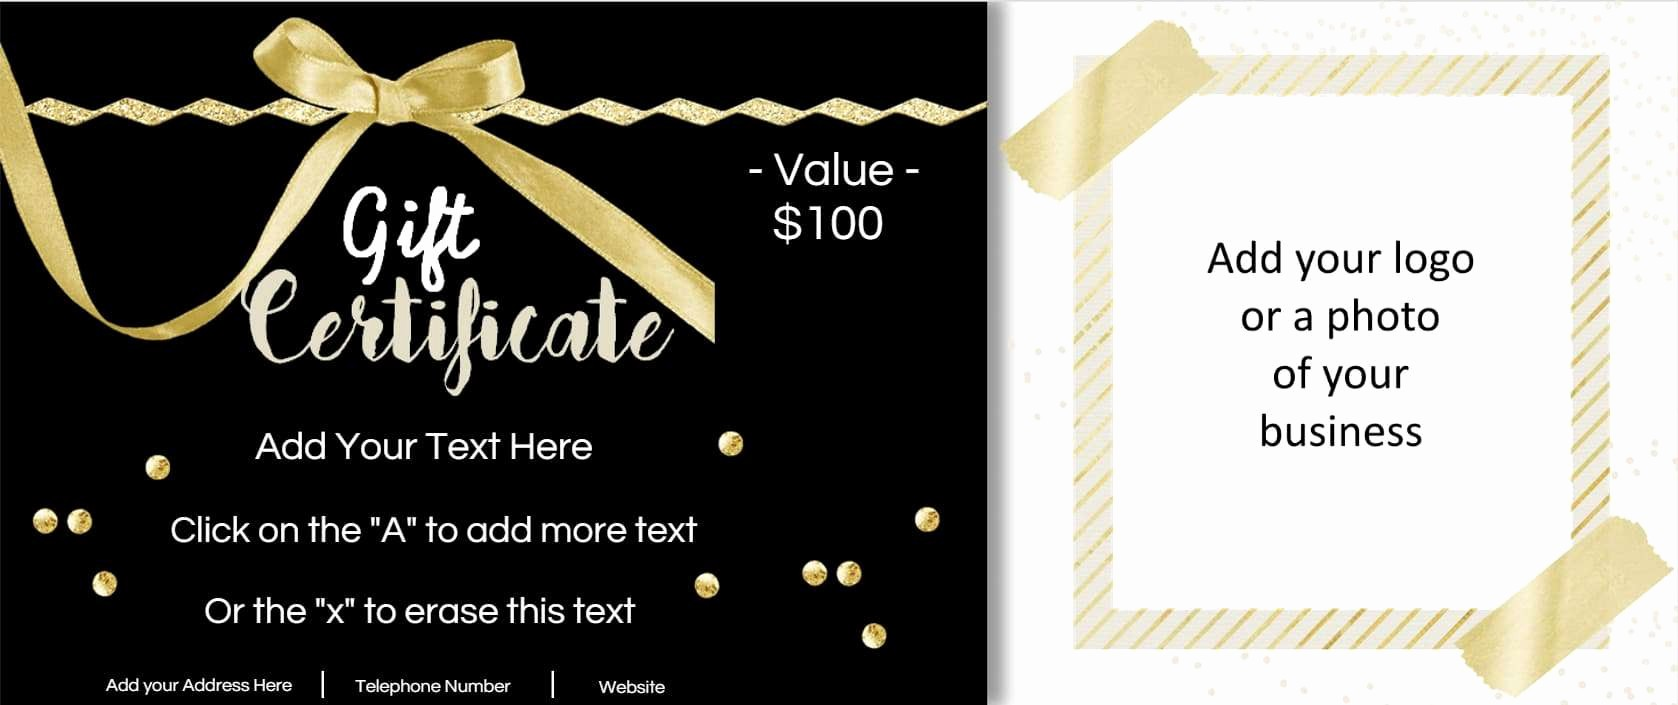 Making A Gift Certificate Free Lovely Gift Certificate Template with Logo